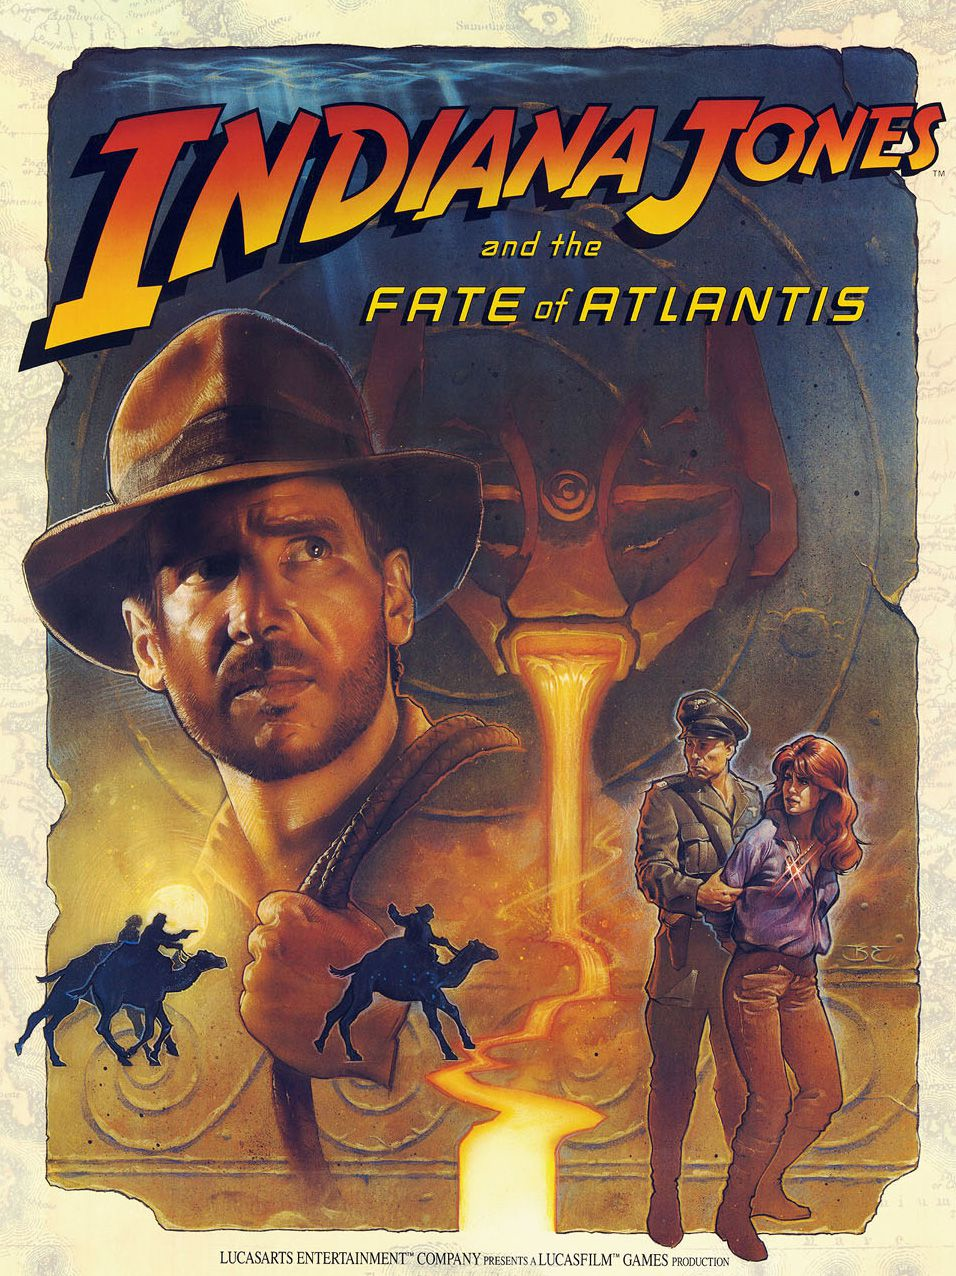 Voir Film Indiana Jones and the Fate of Atlantis (1992)  - Jeu vidéo streaming VF gratuit complet